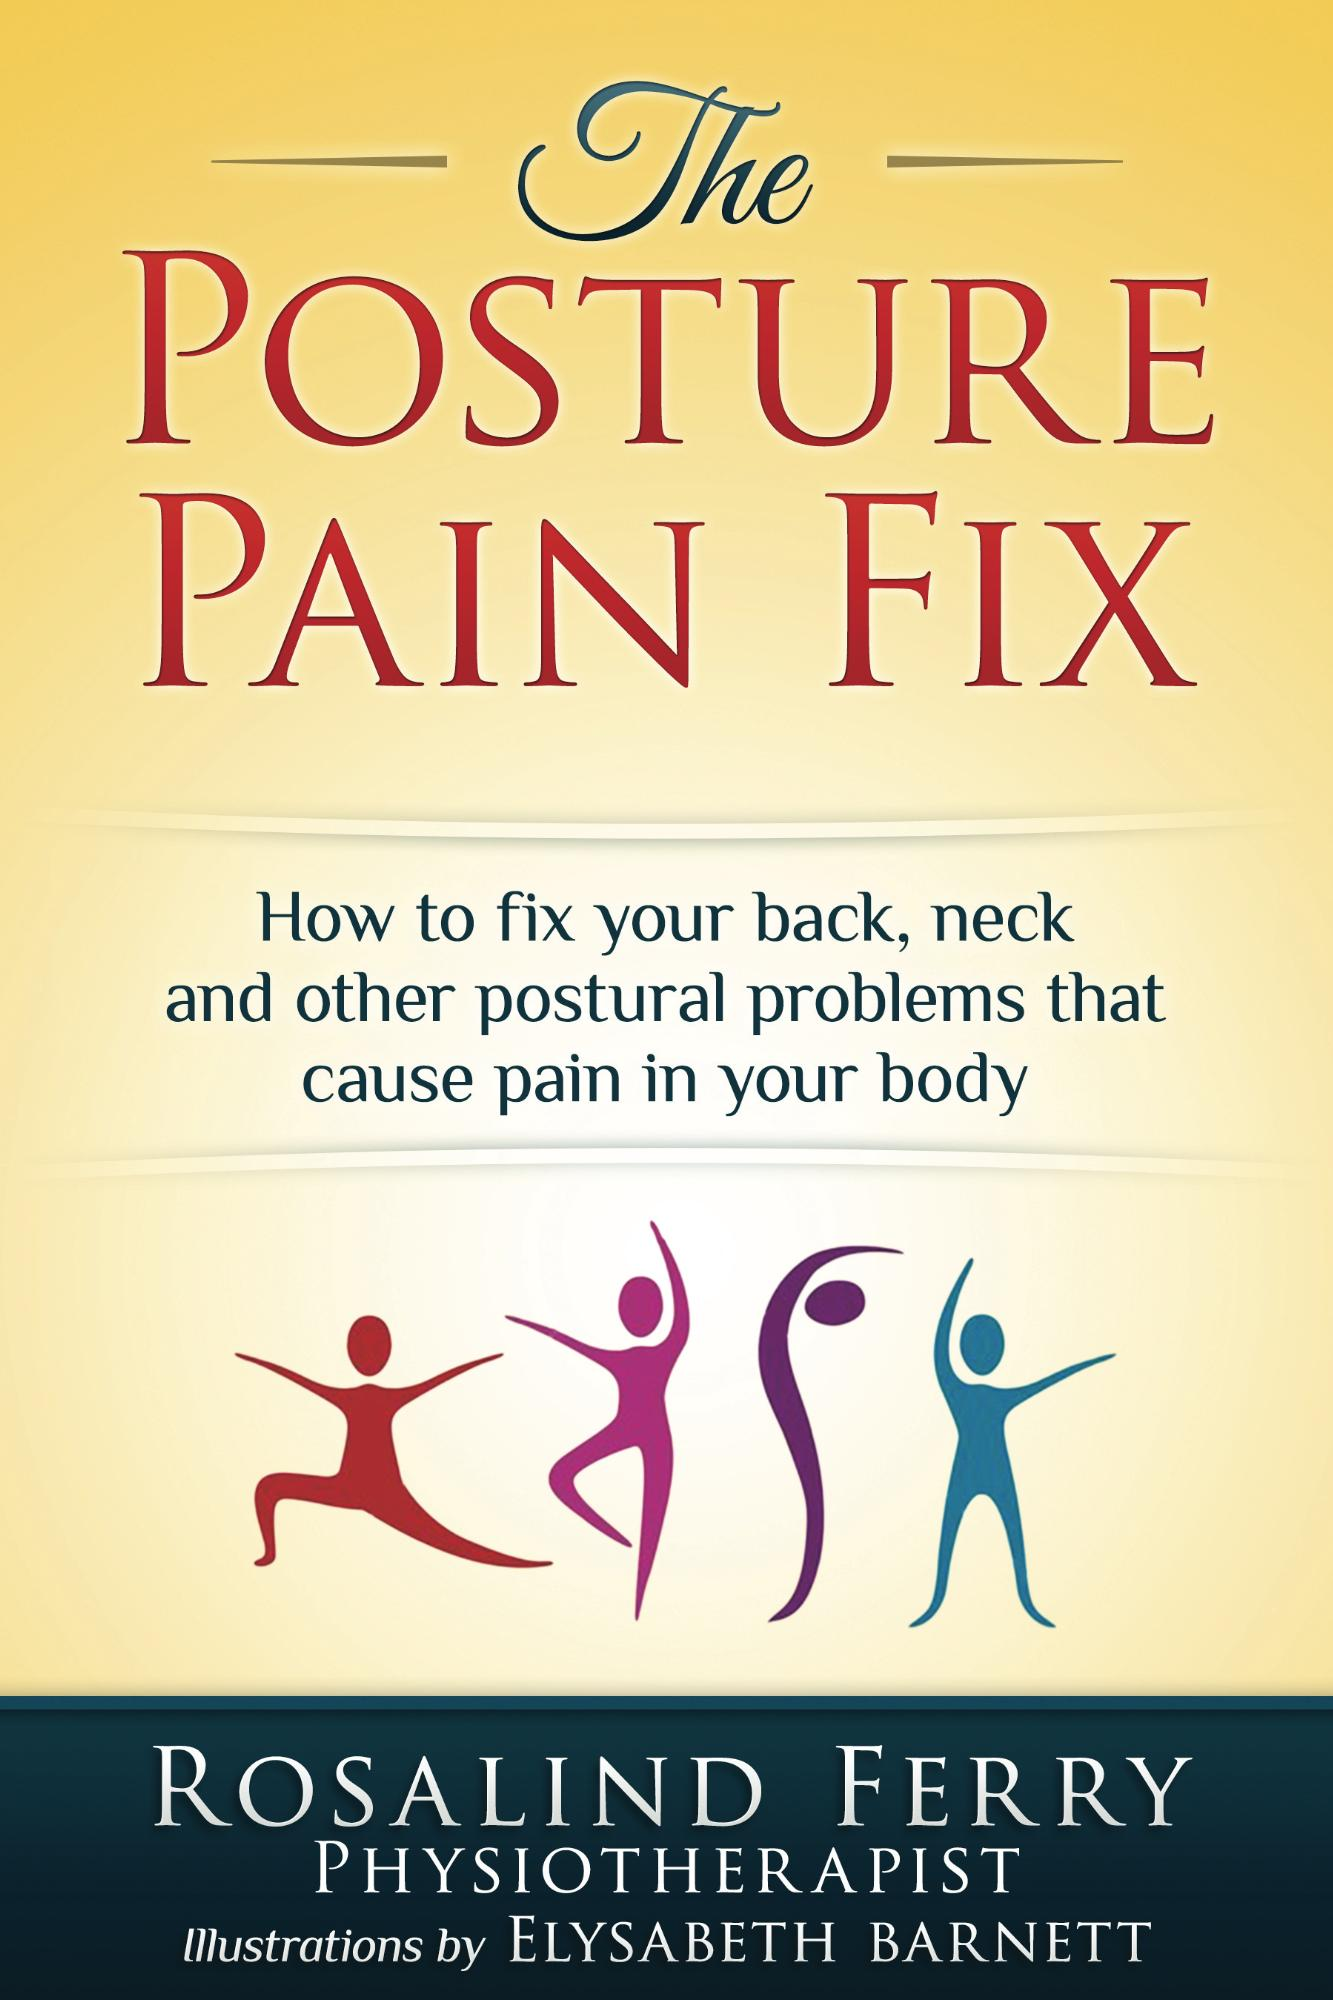 The Posture Pain Fix